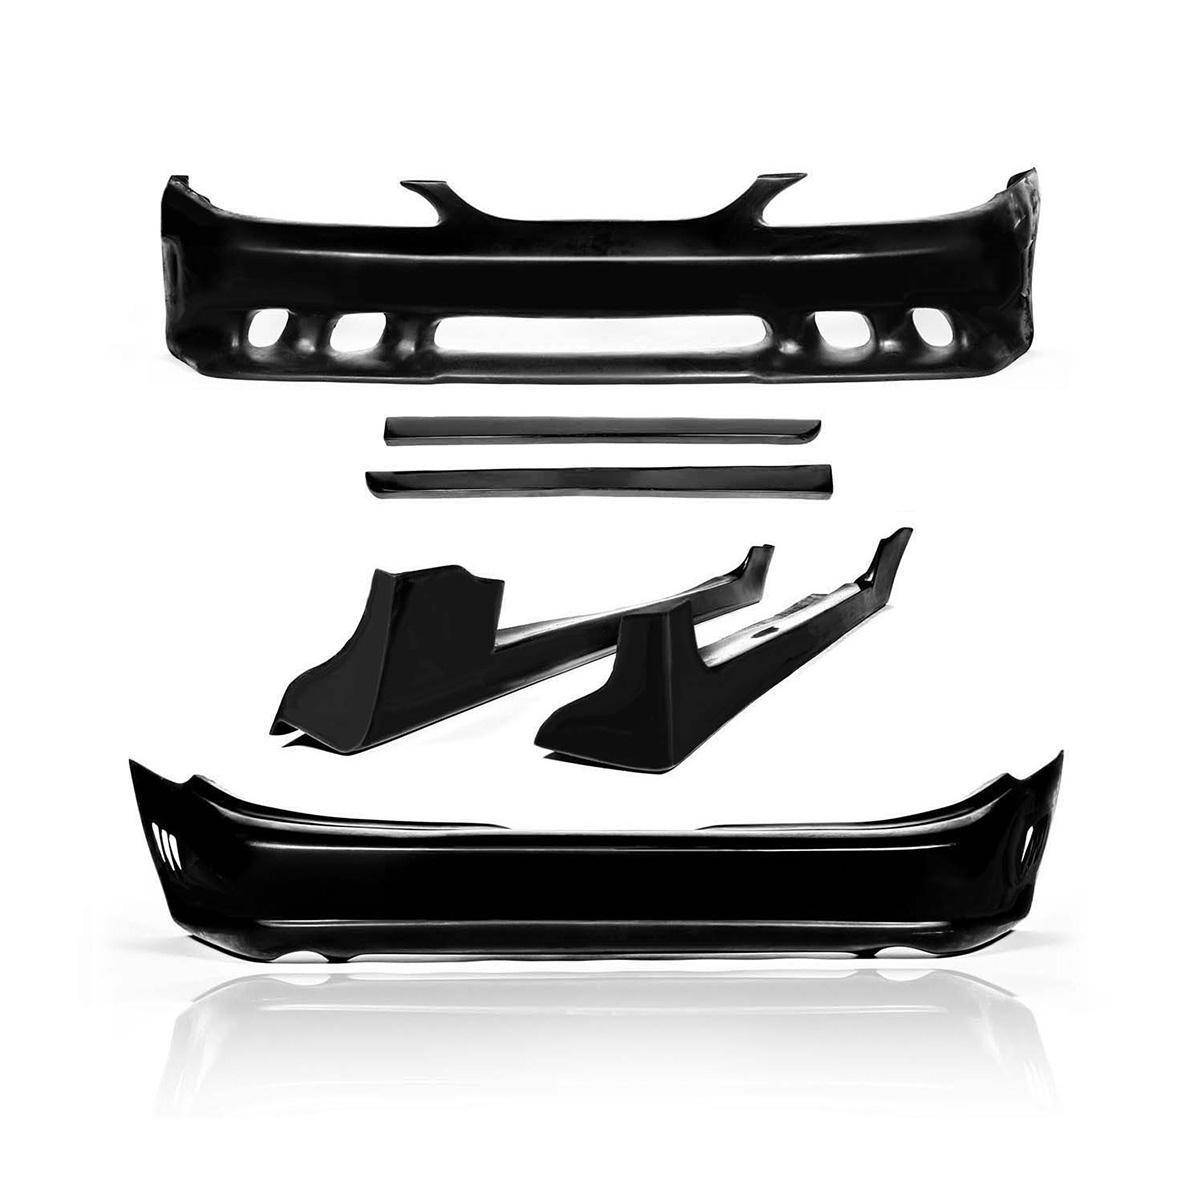 Ford Mustang 1994-1998 Sallen Style 6 Piece Polyurethane Full Body Kit